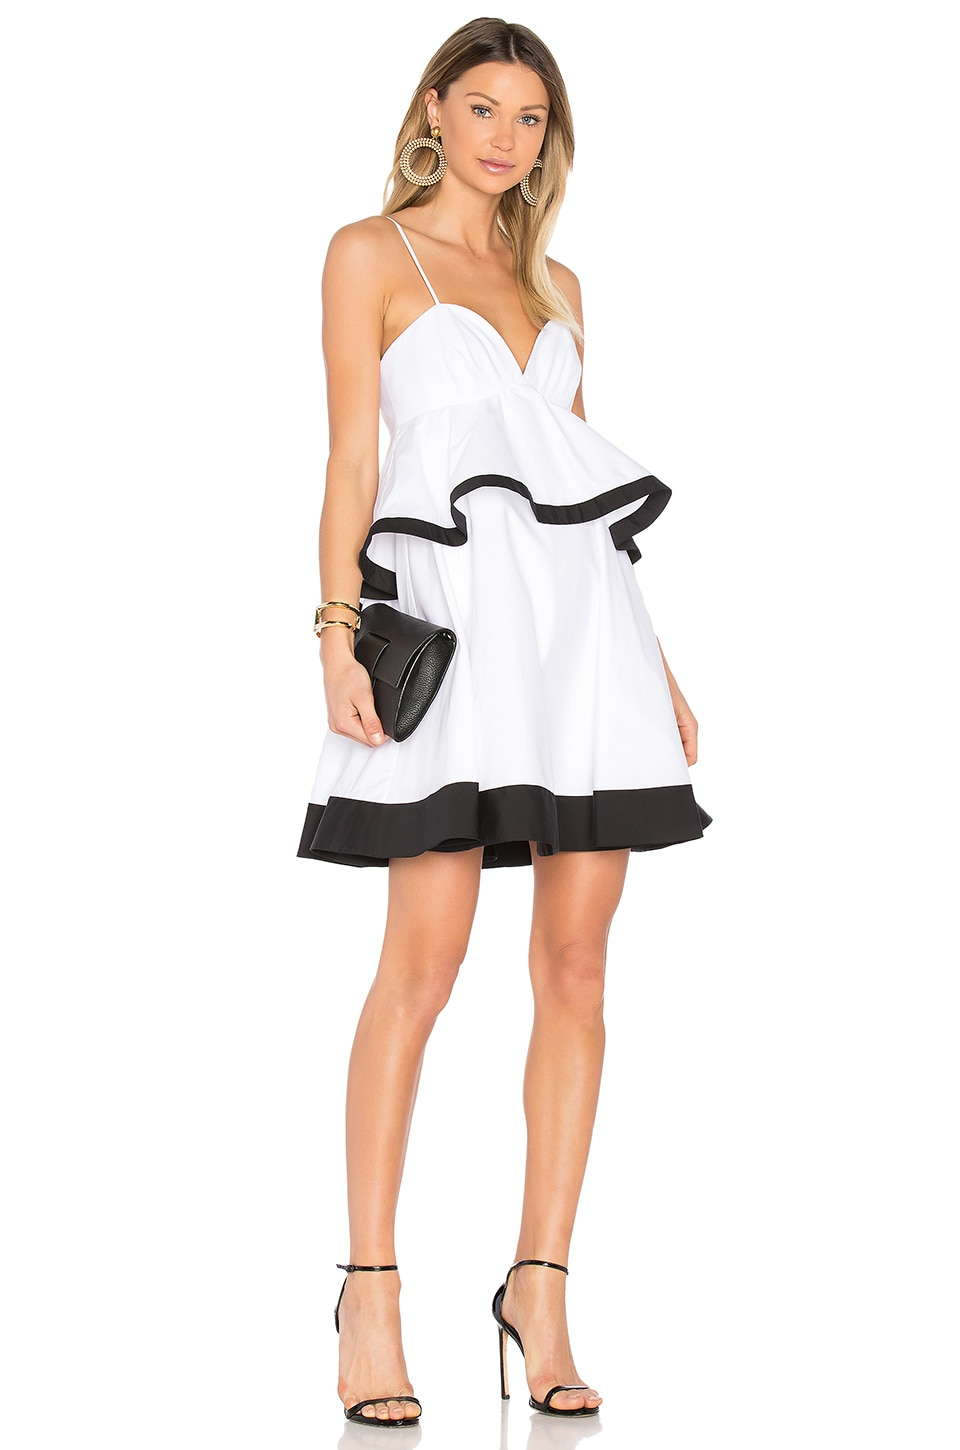 MILLY Melody Dress in White & Black